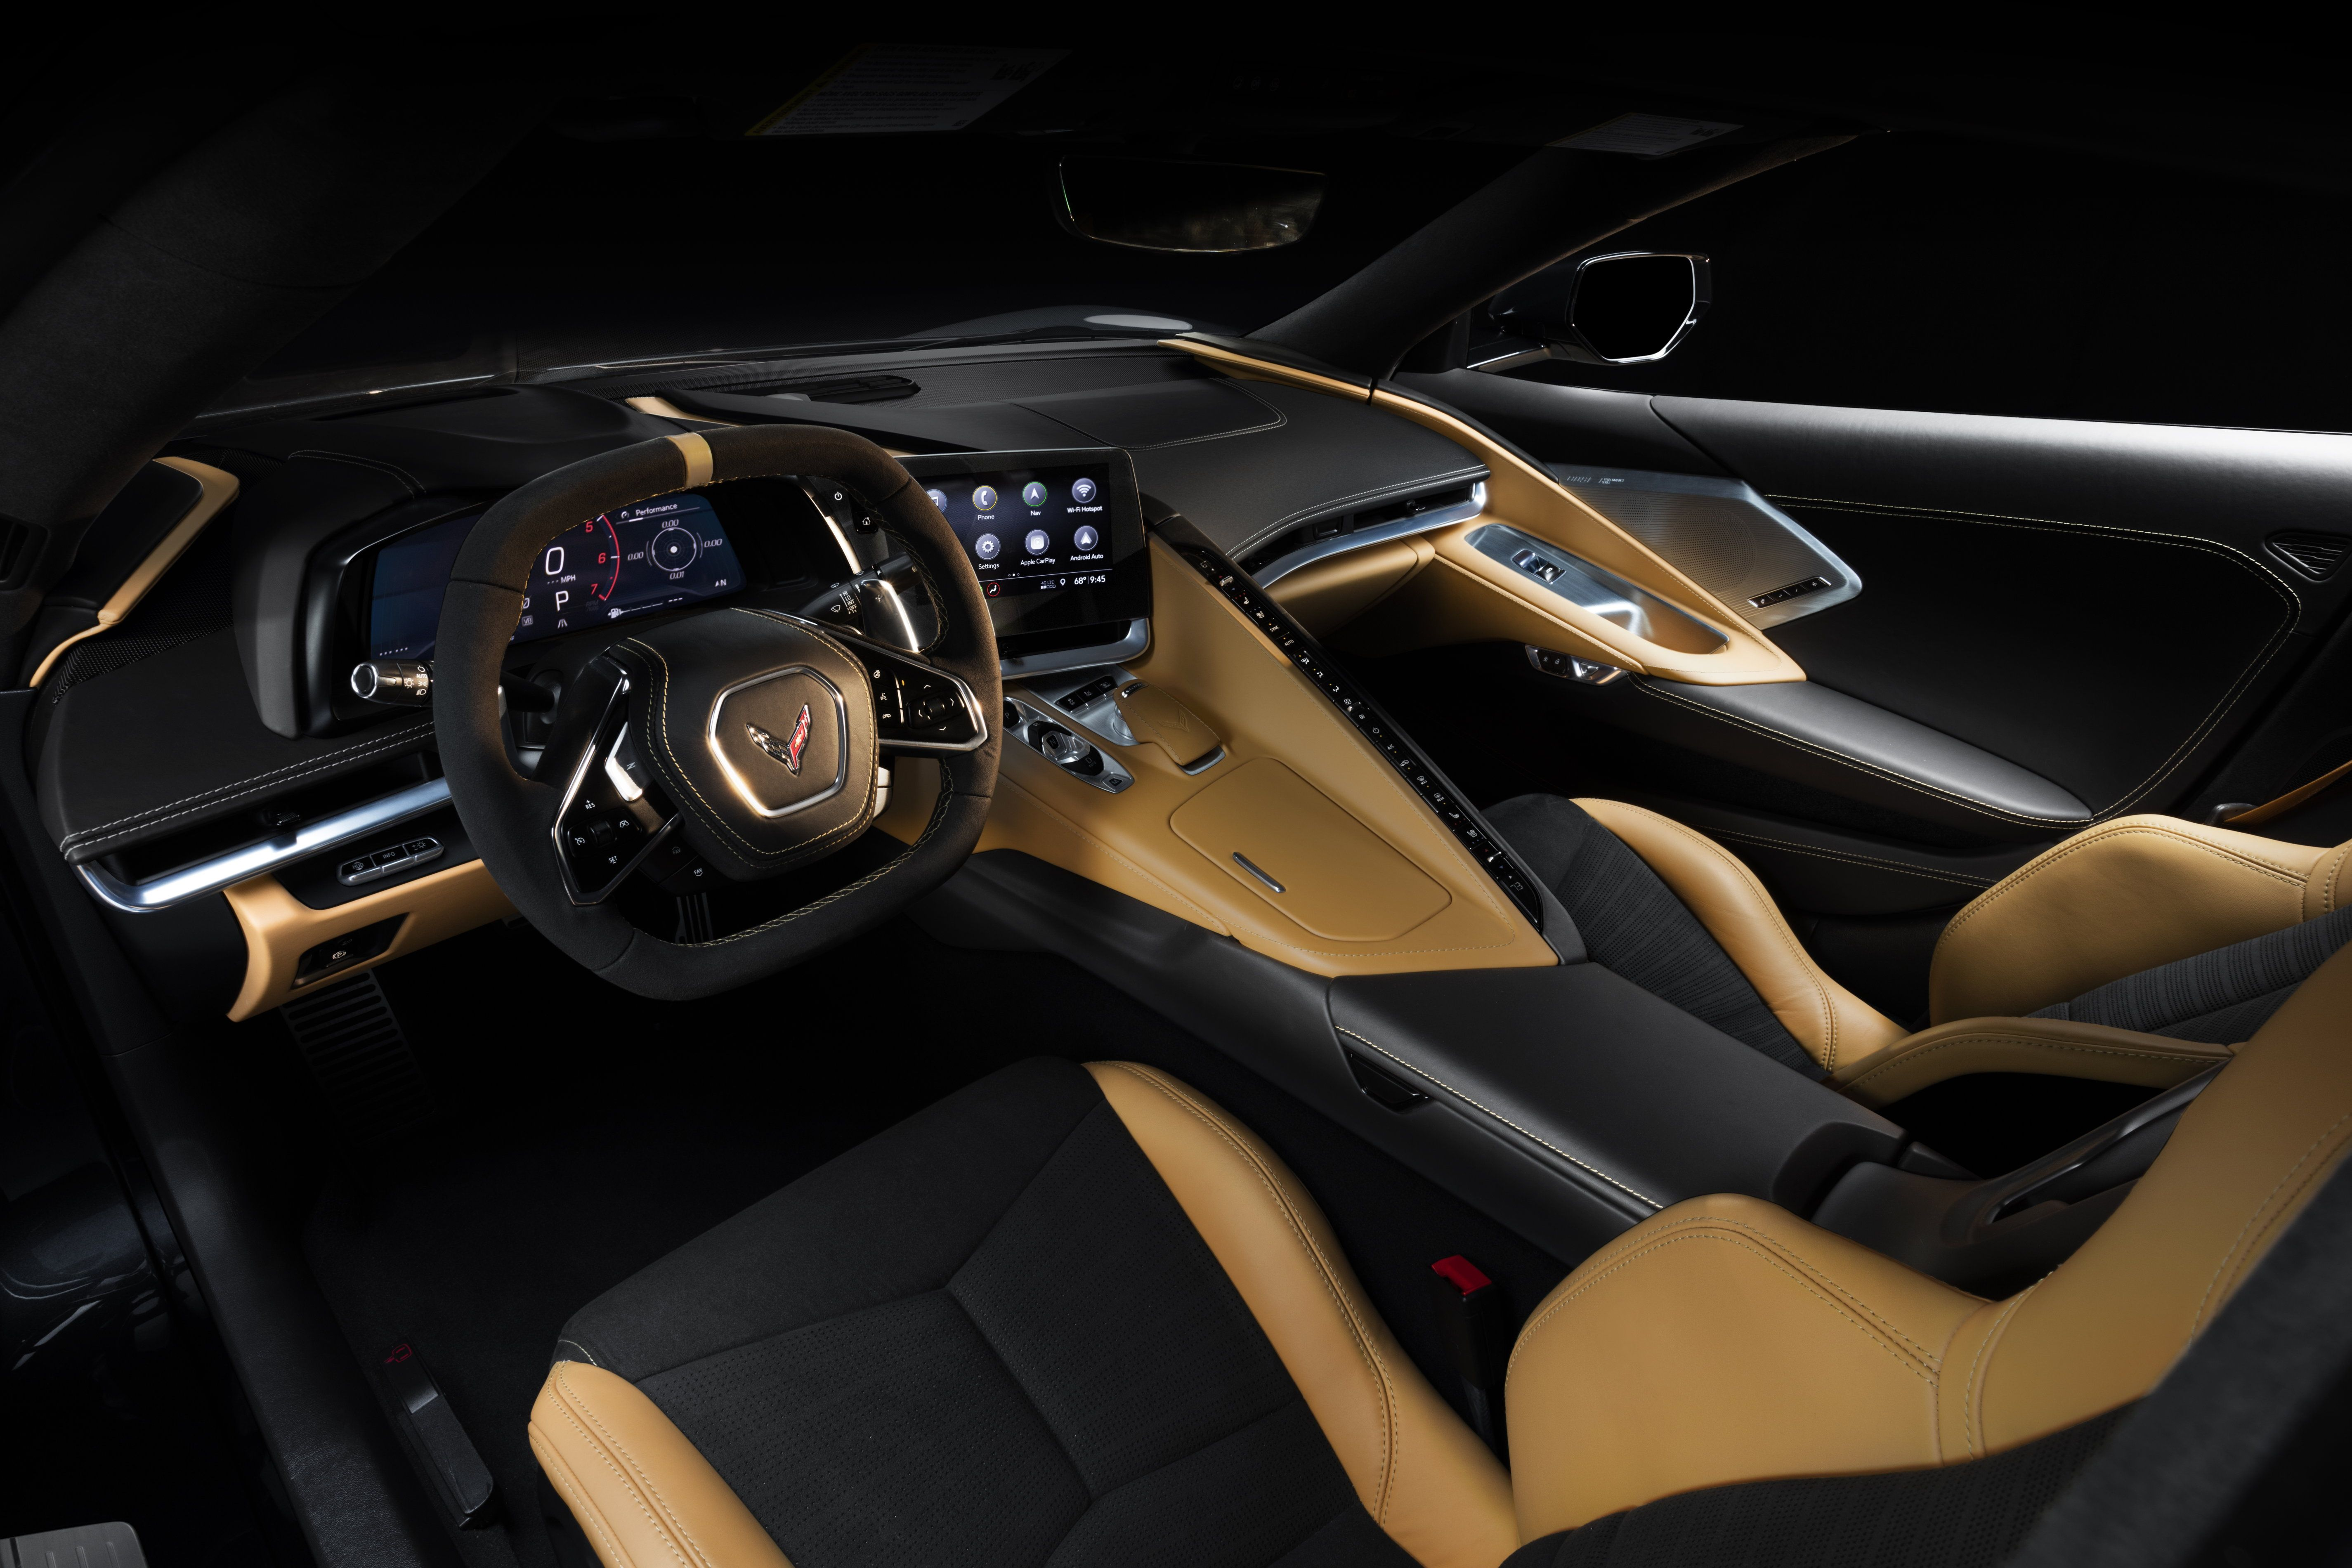 The New 2020 Chevy C8 Corvette S Interior Is Befitting Of A Supercar Even Though It Will Start At Under 60 000 Chevrolet Corvette Stingray Chevrolet Corvette Corvette Stingray